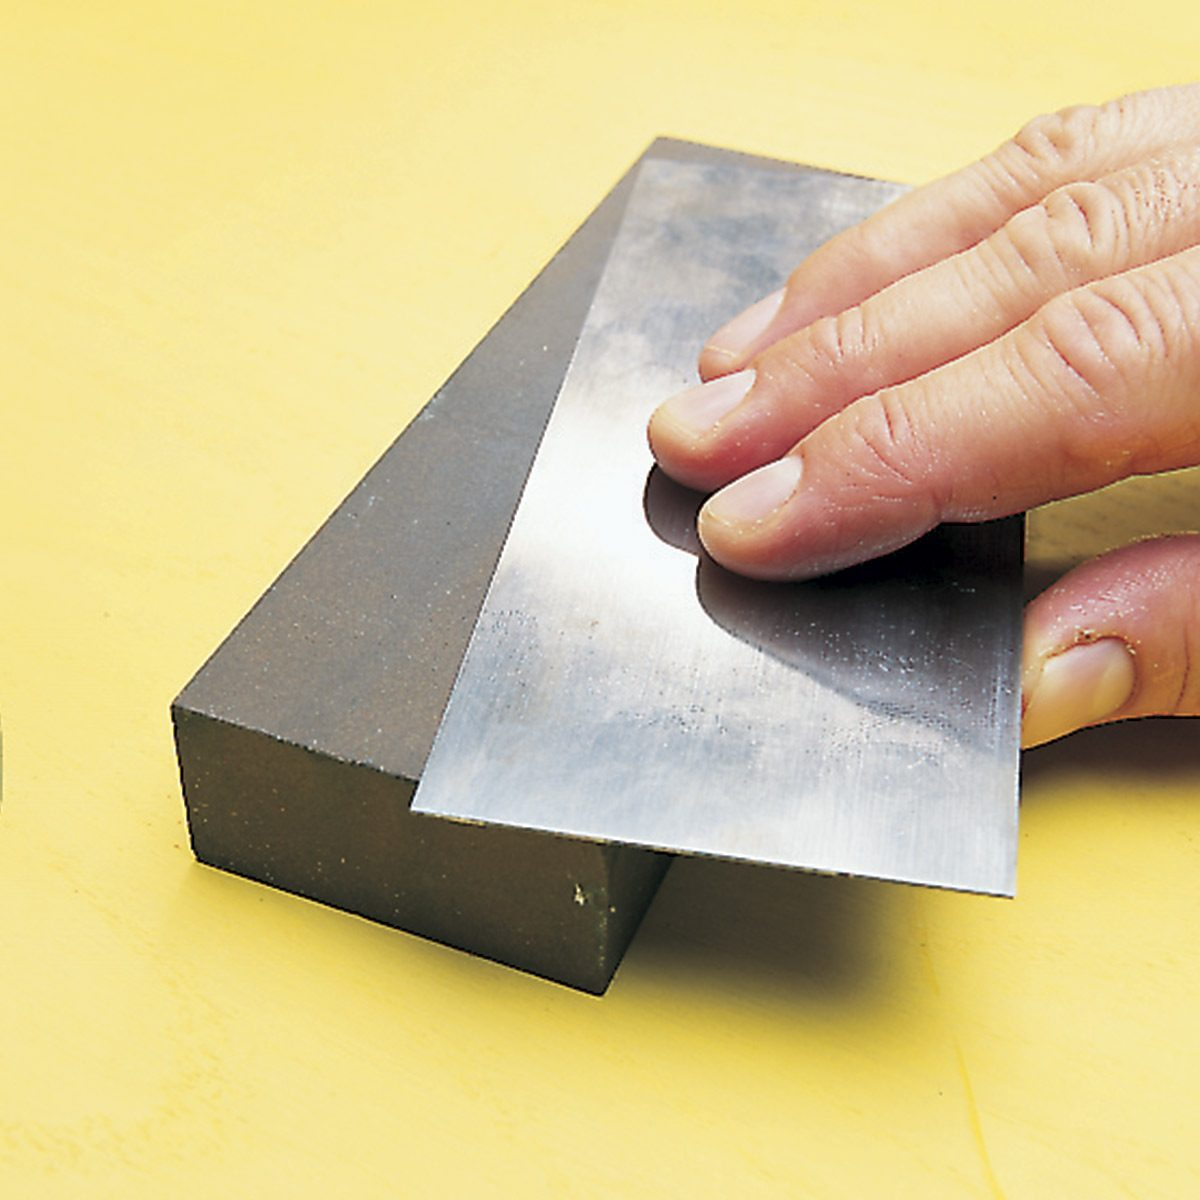 polishing a cabinet scraper